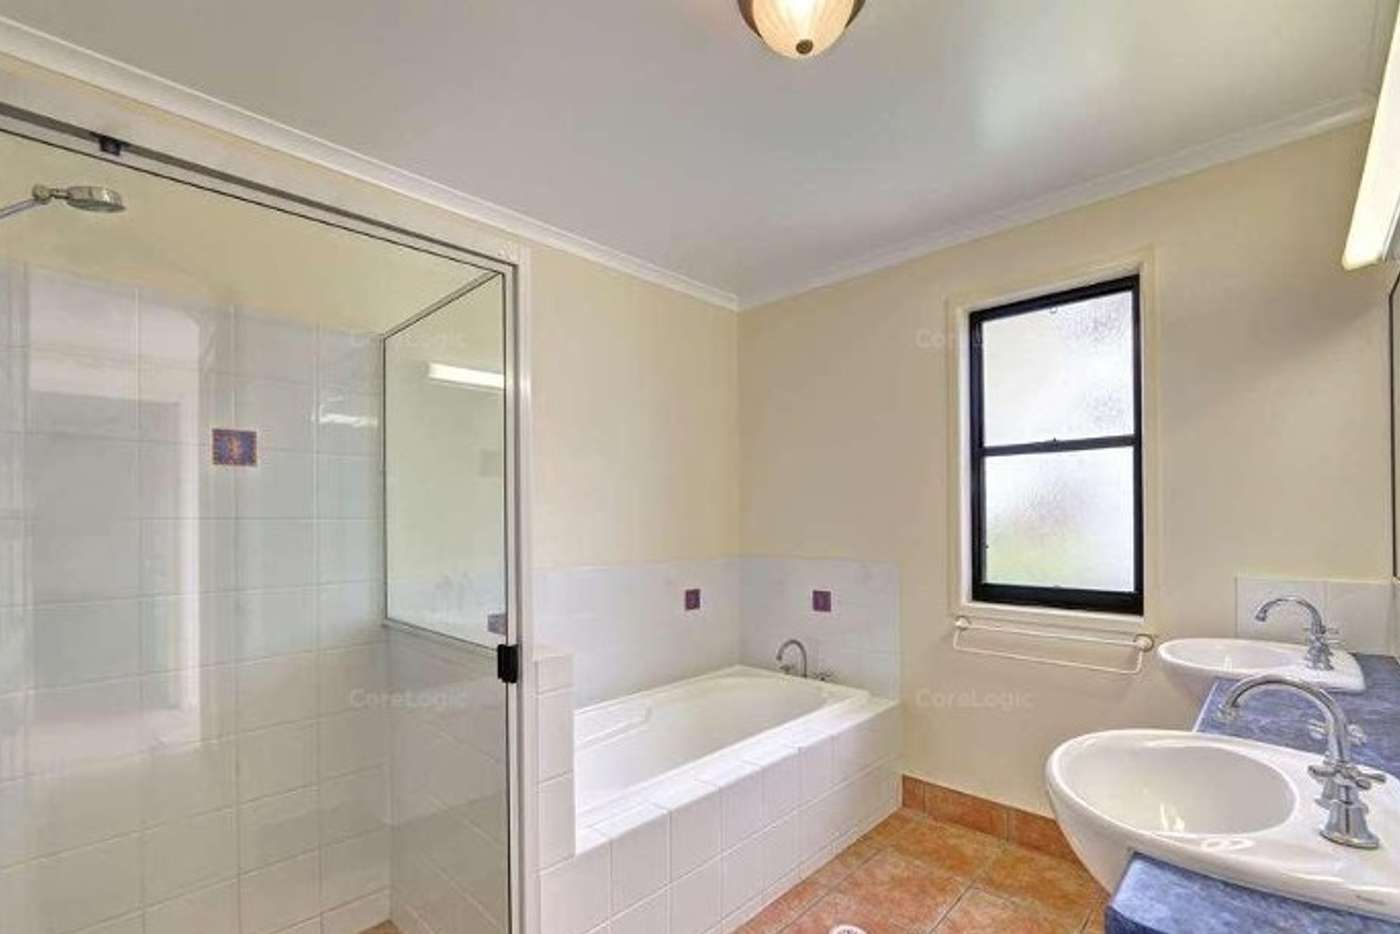 Seventh view of Homely house listing, 14 Chantelle Cct, Coral Cove QLD 4670